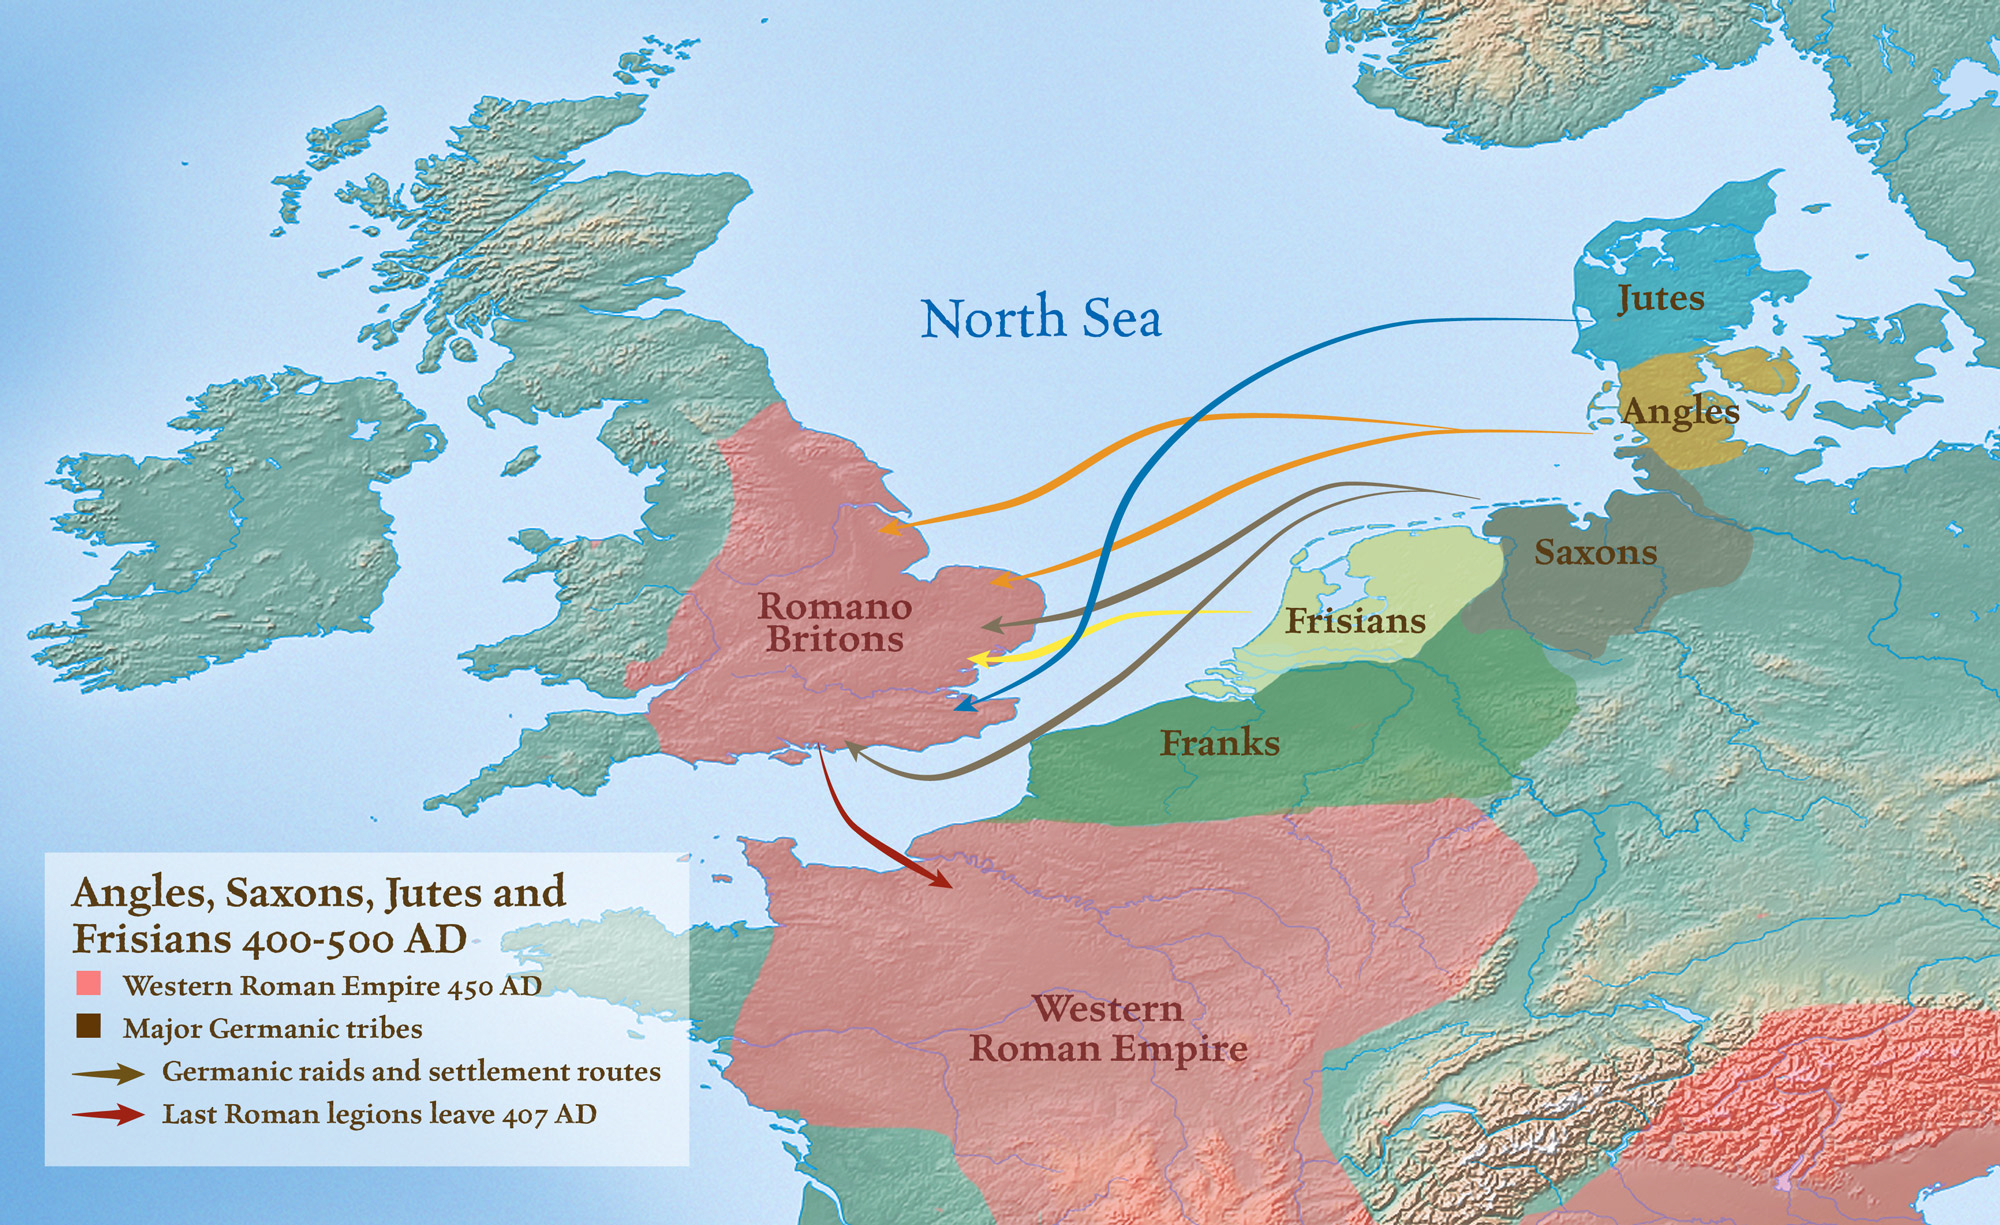 27-angles-saxons-jutes-frisians-during-roman-occupation-of-britannia.png